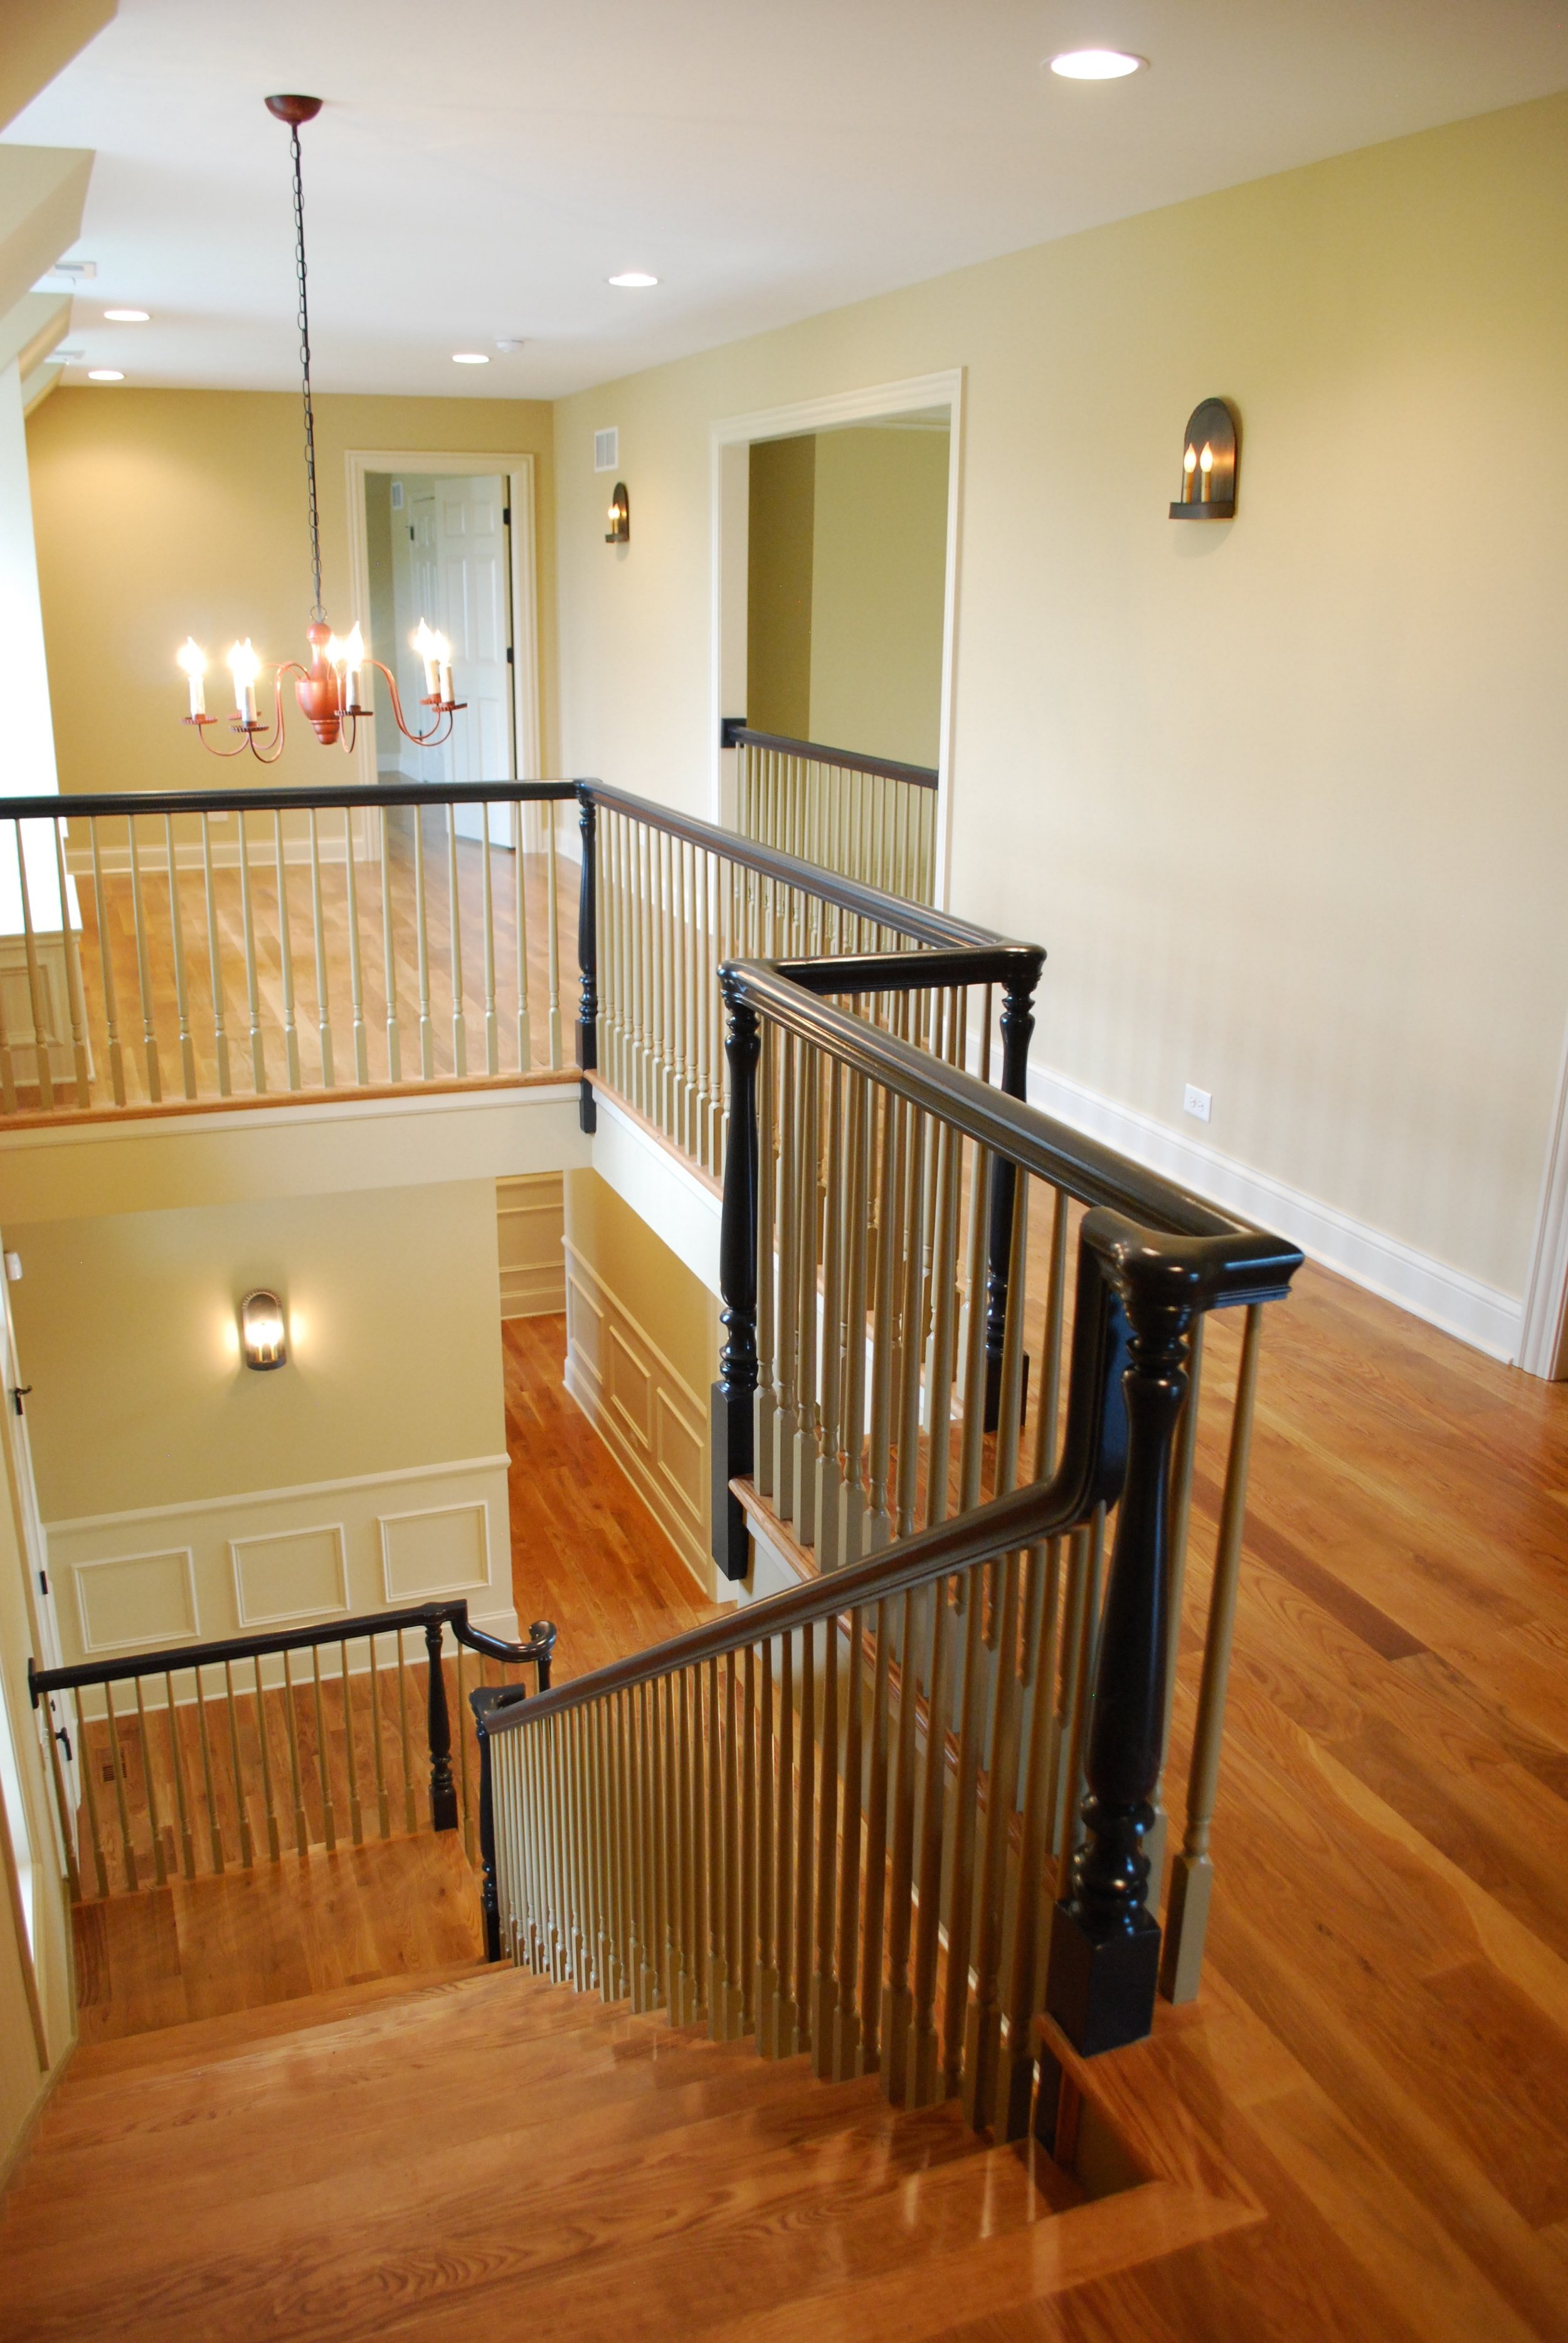 Historical Replication Staircase in this New Custom Home